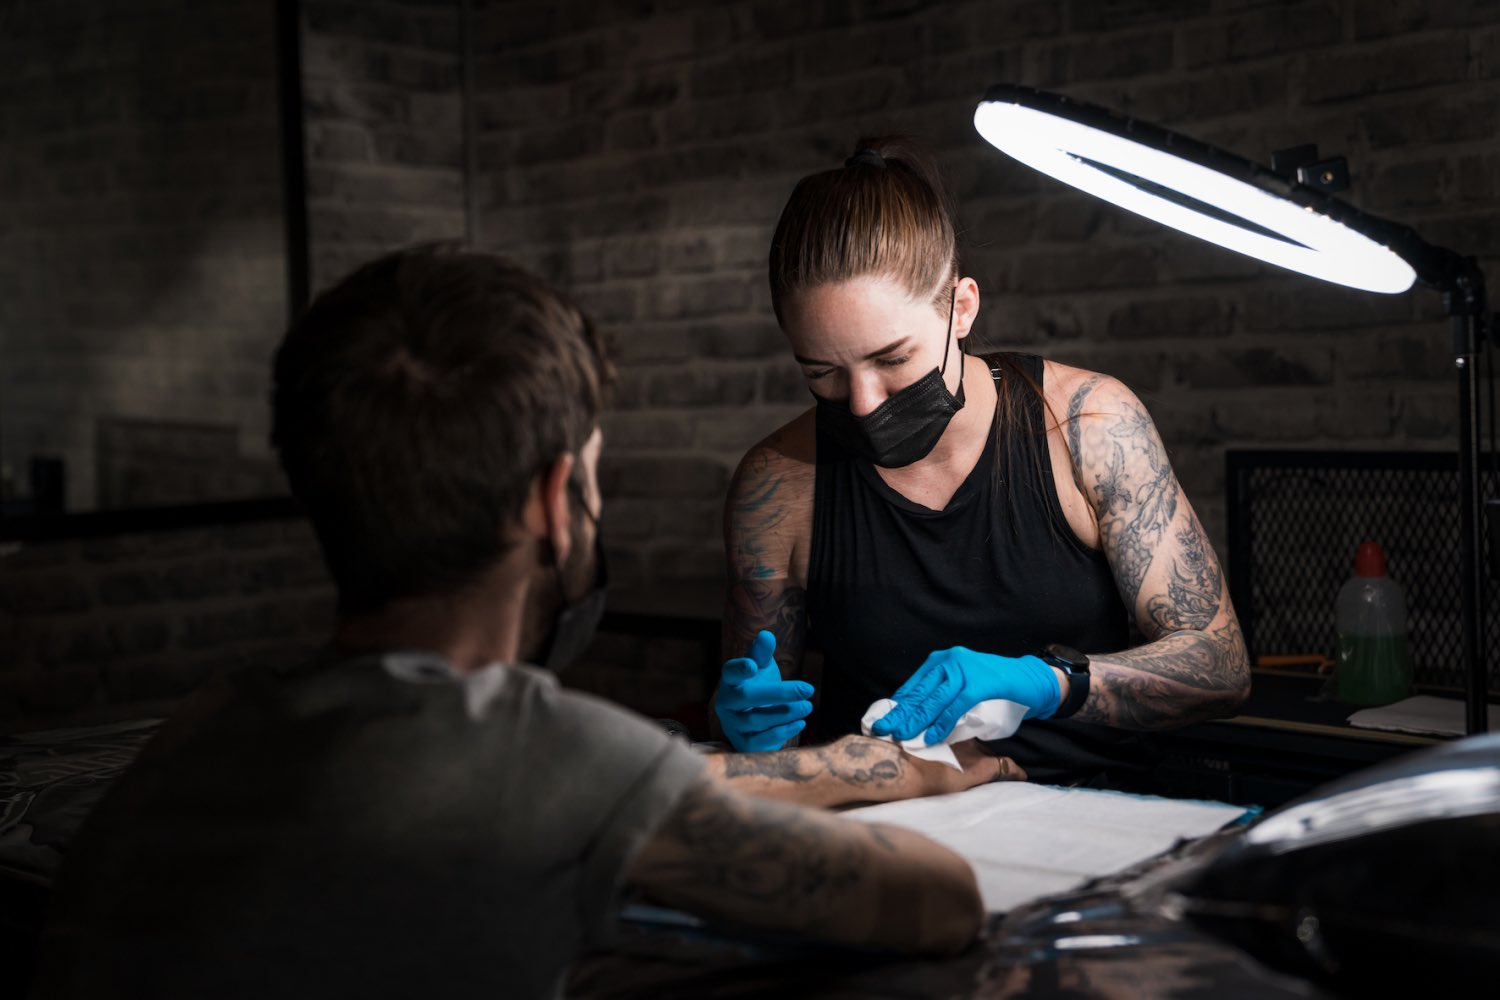 Tory Sutherland-Dadds getting ready to tattoo a client